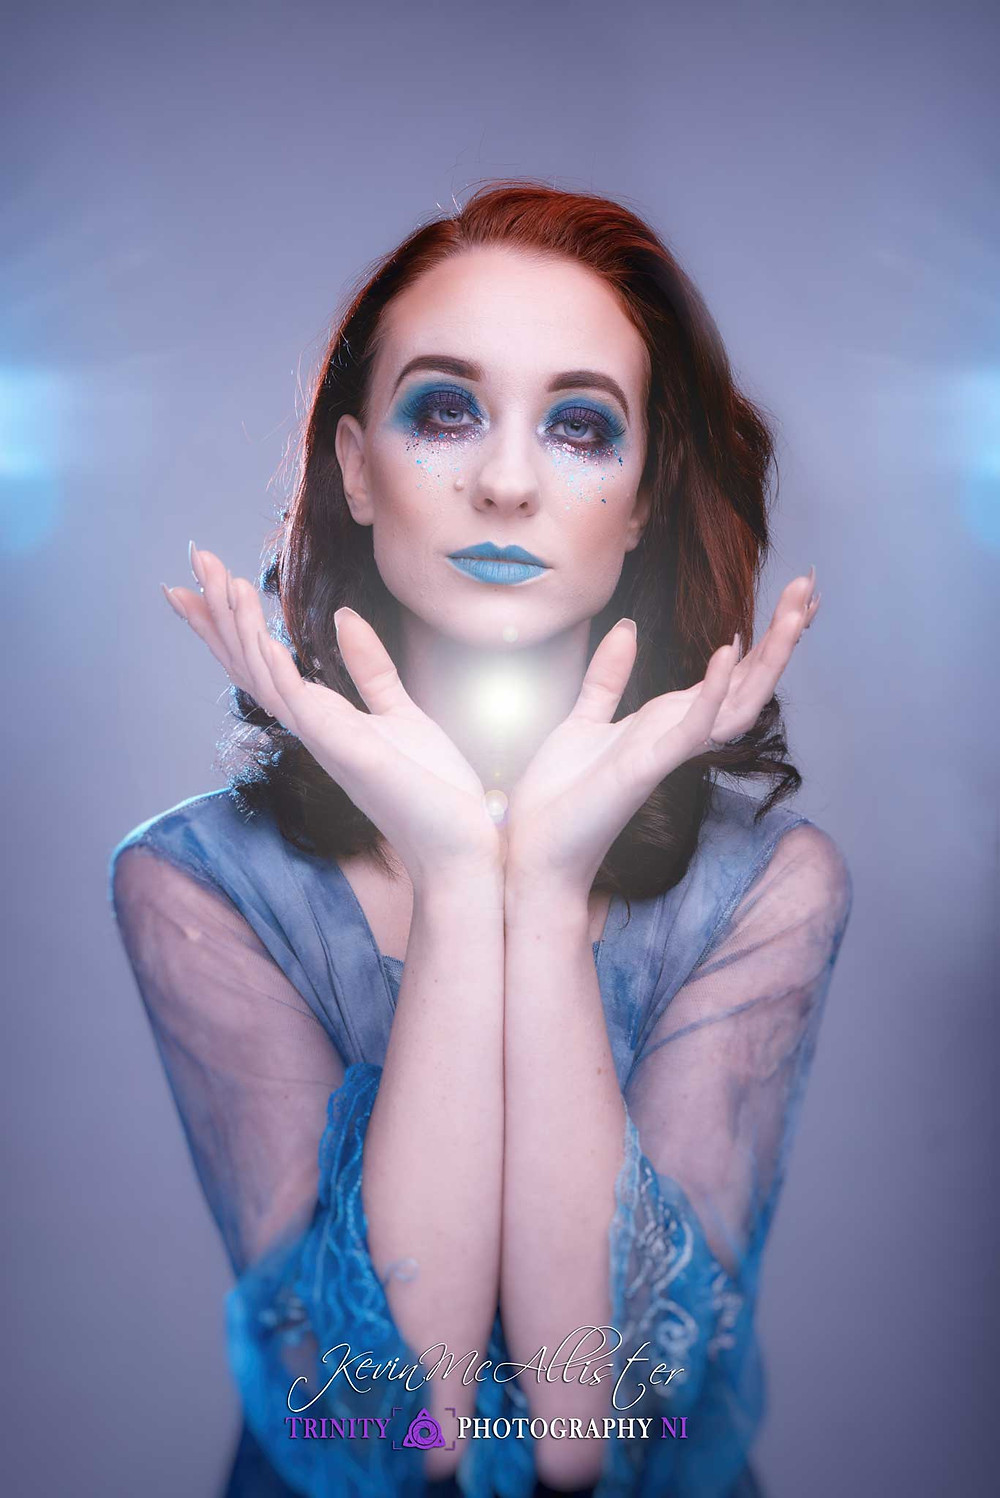 model light blue dress blue makeup image